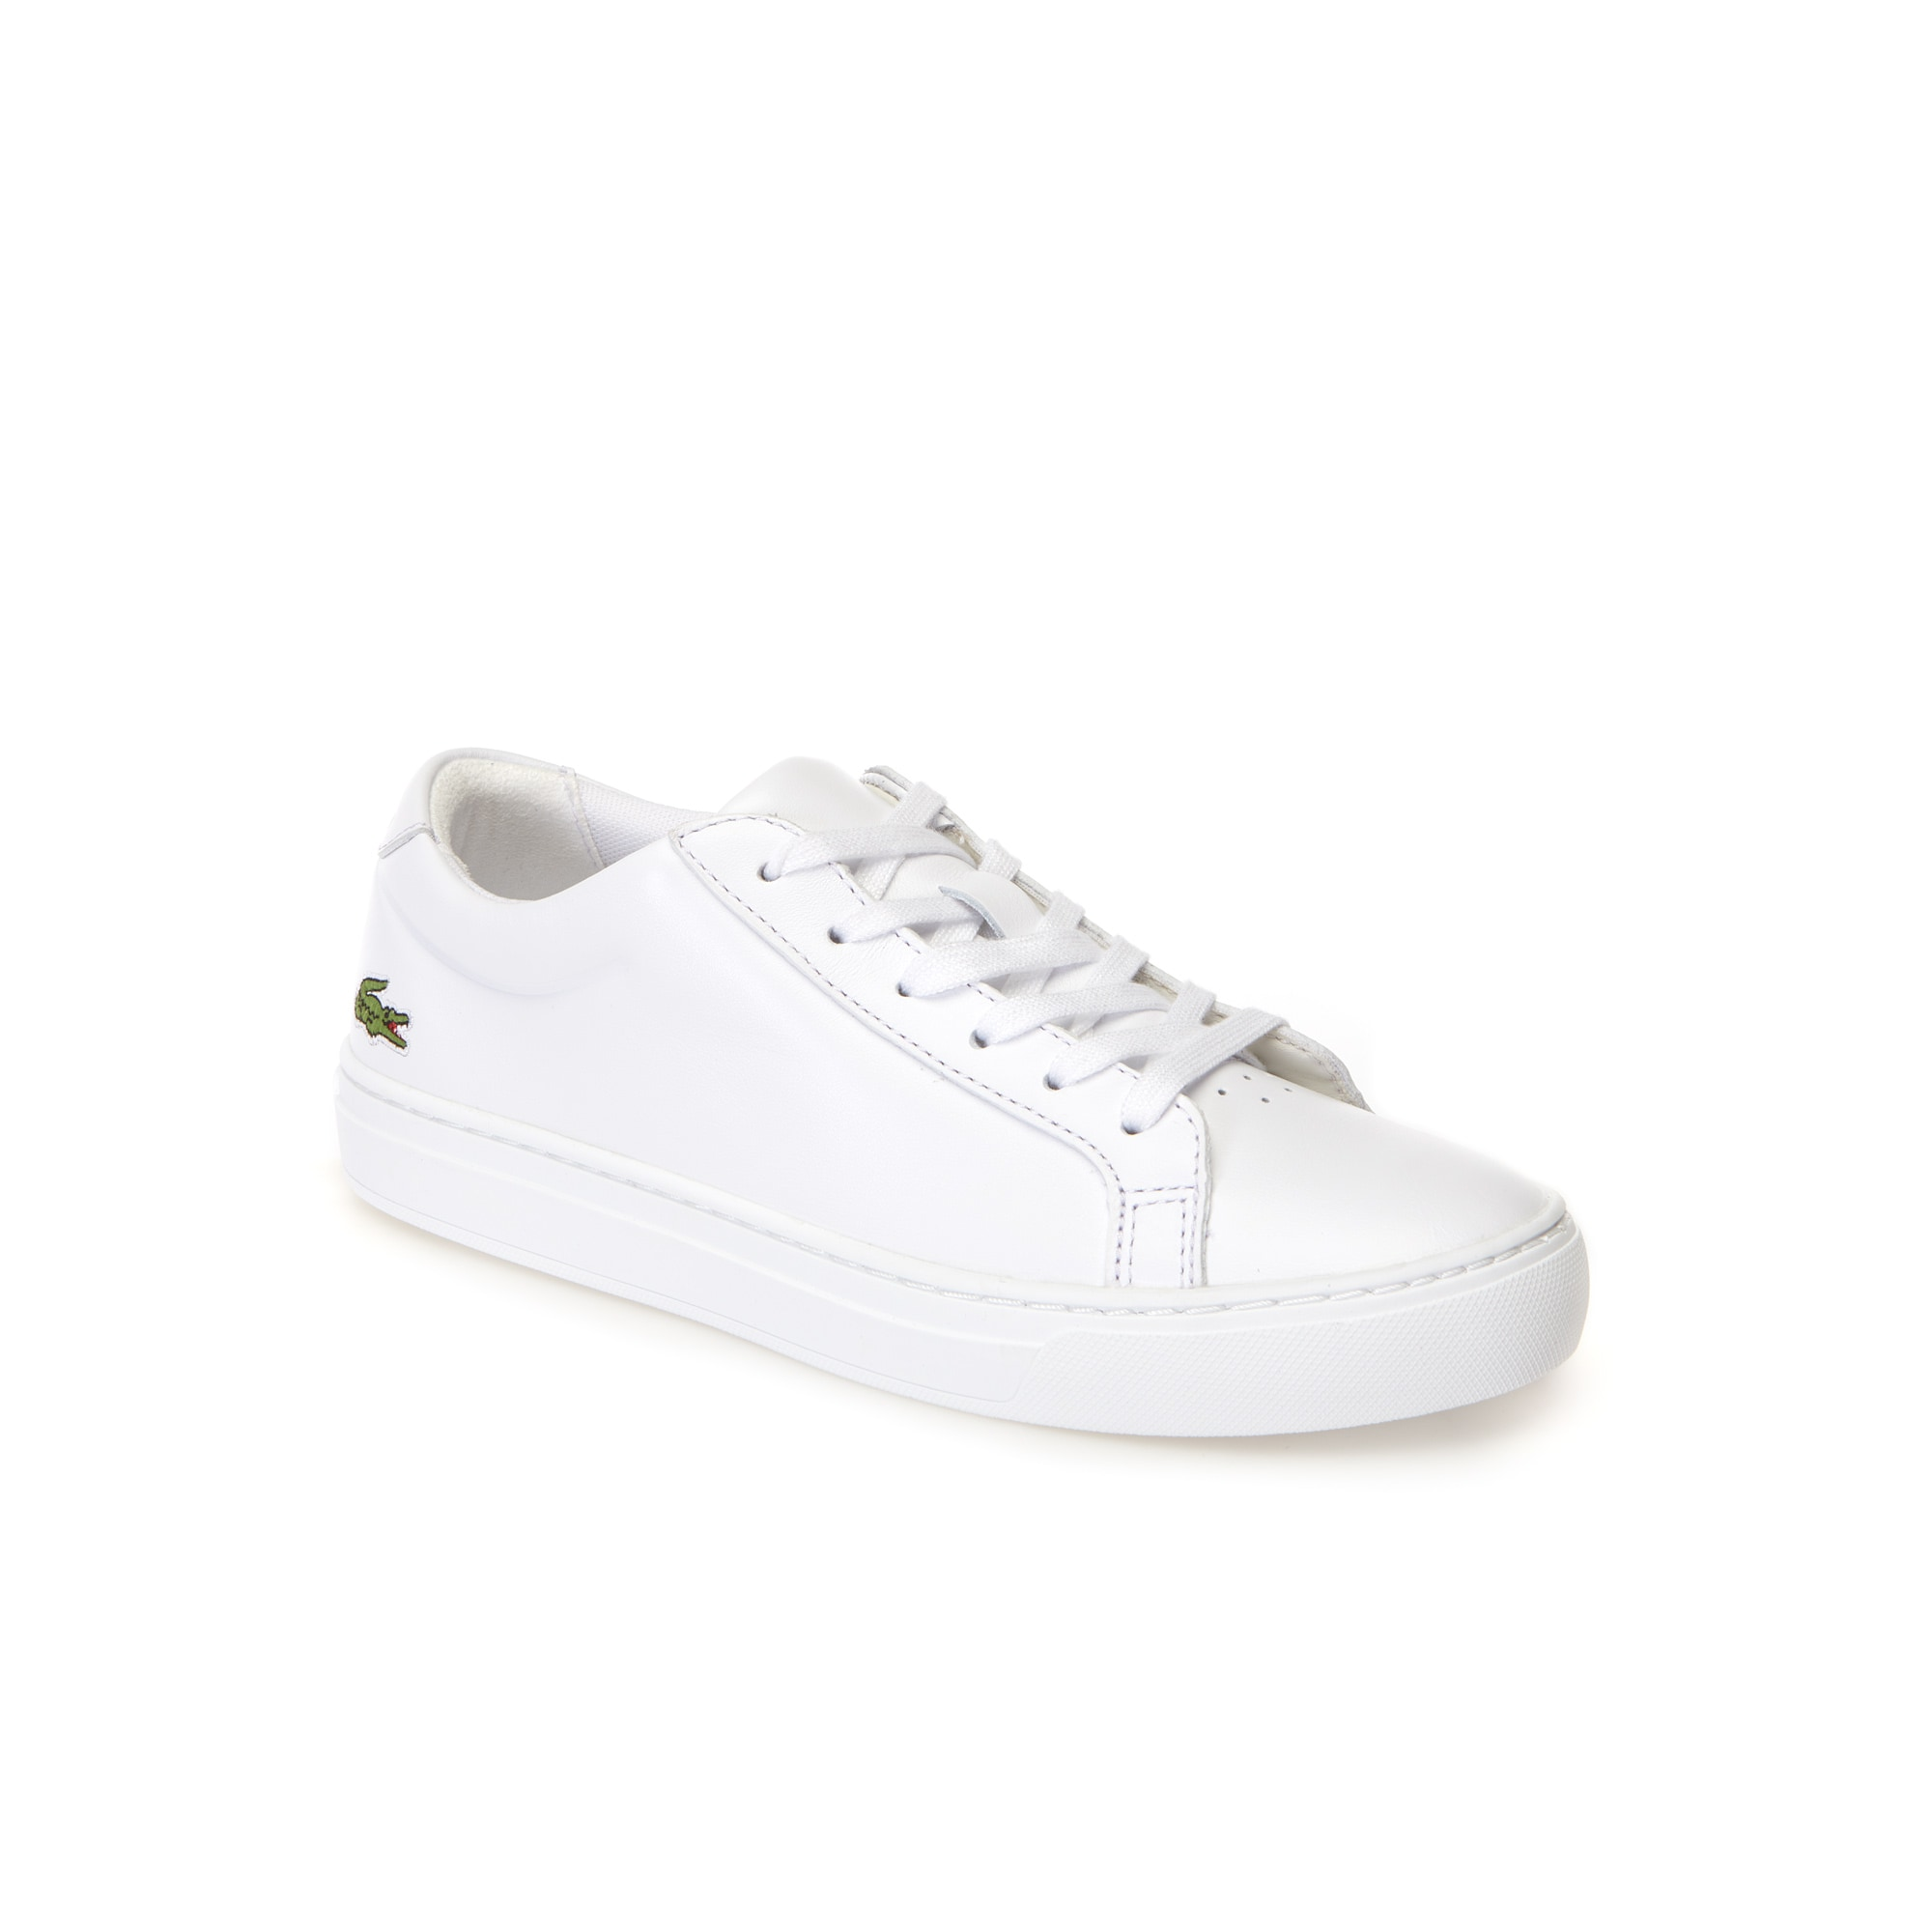 Women's L.12.12 Nappa Leather Sneakers